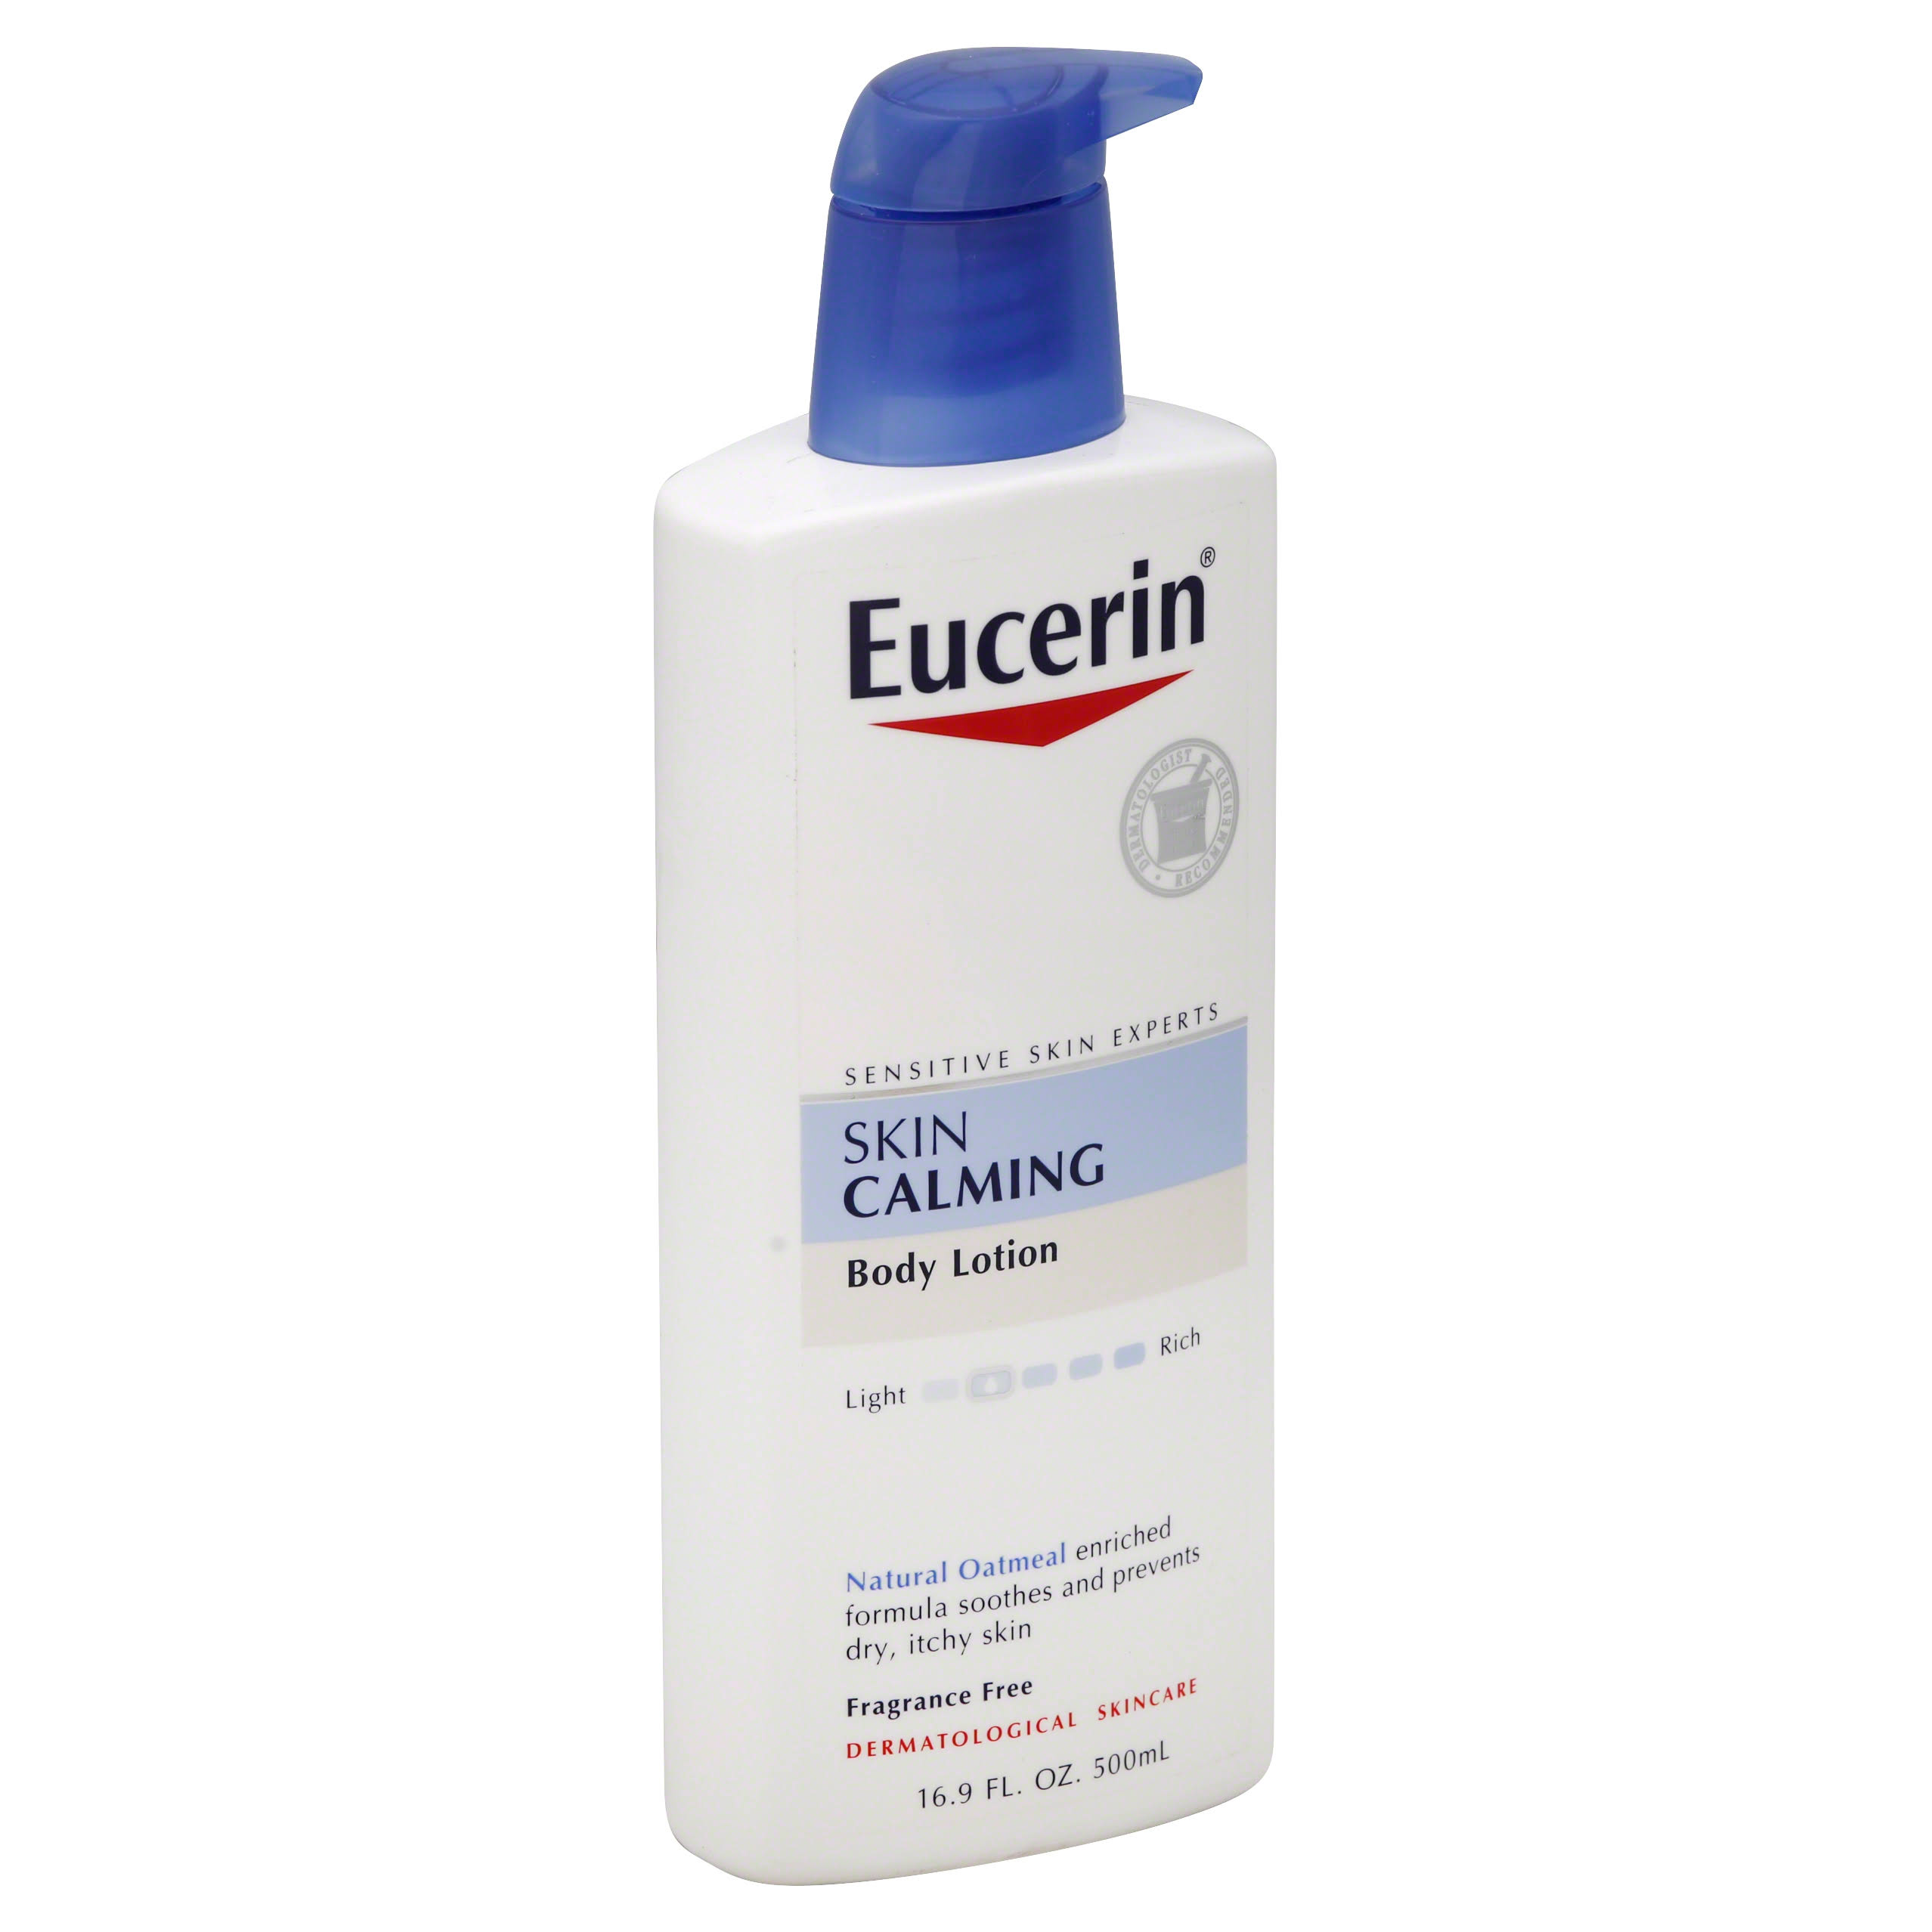 Eucerin Skin Calming Body Lotion - 500ml